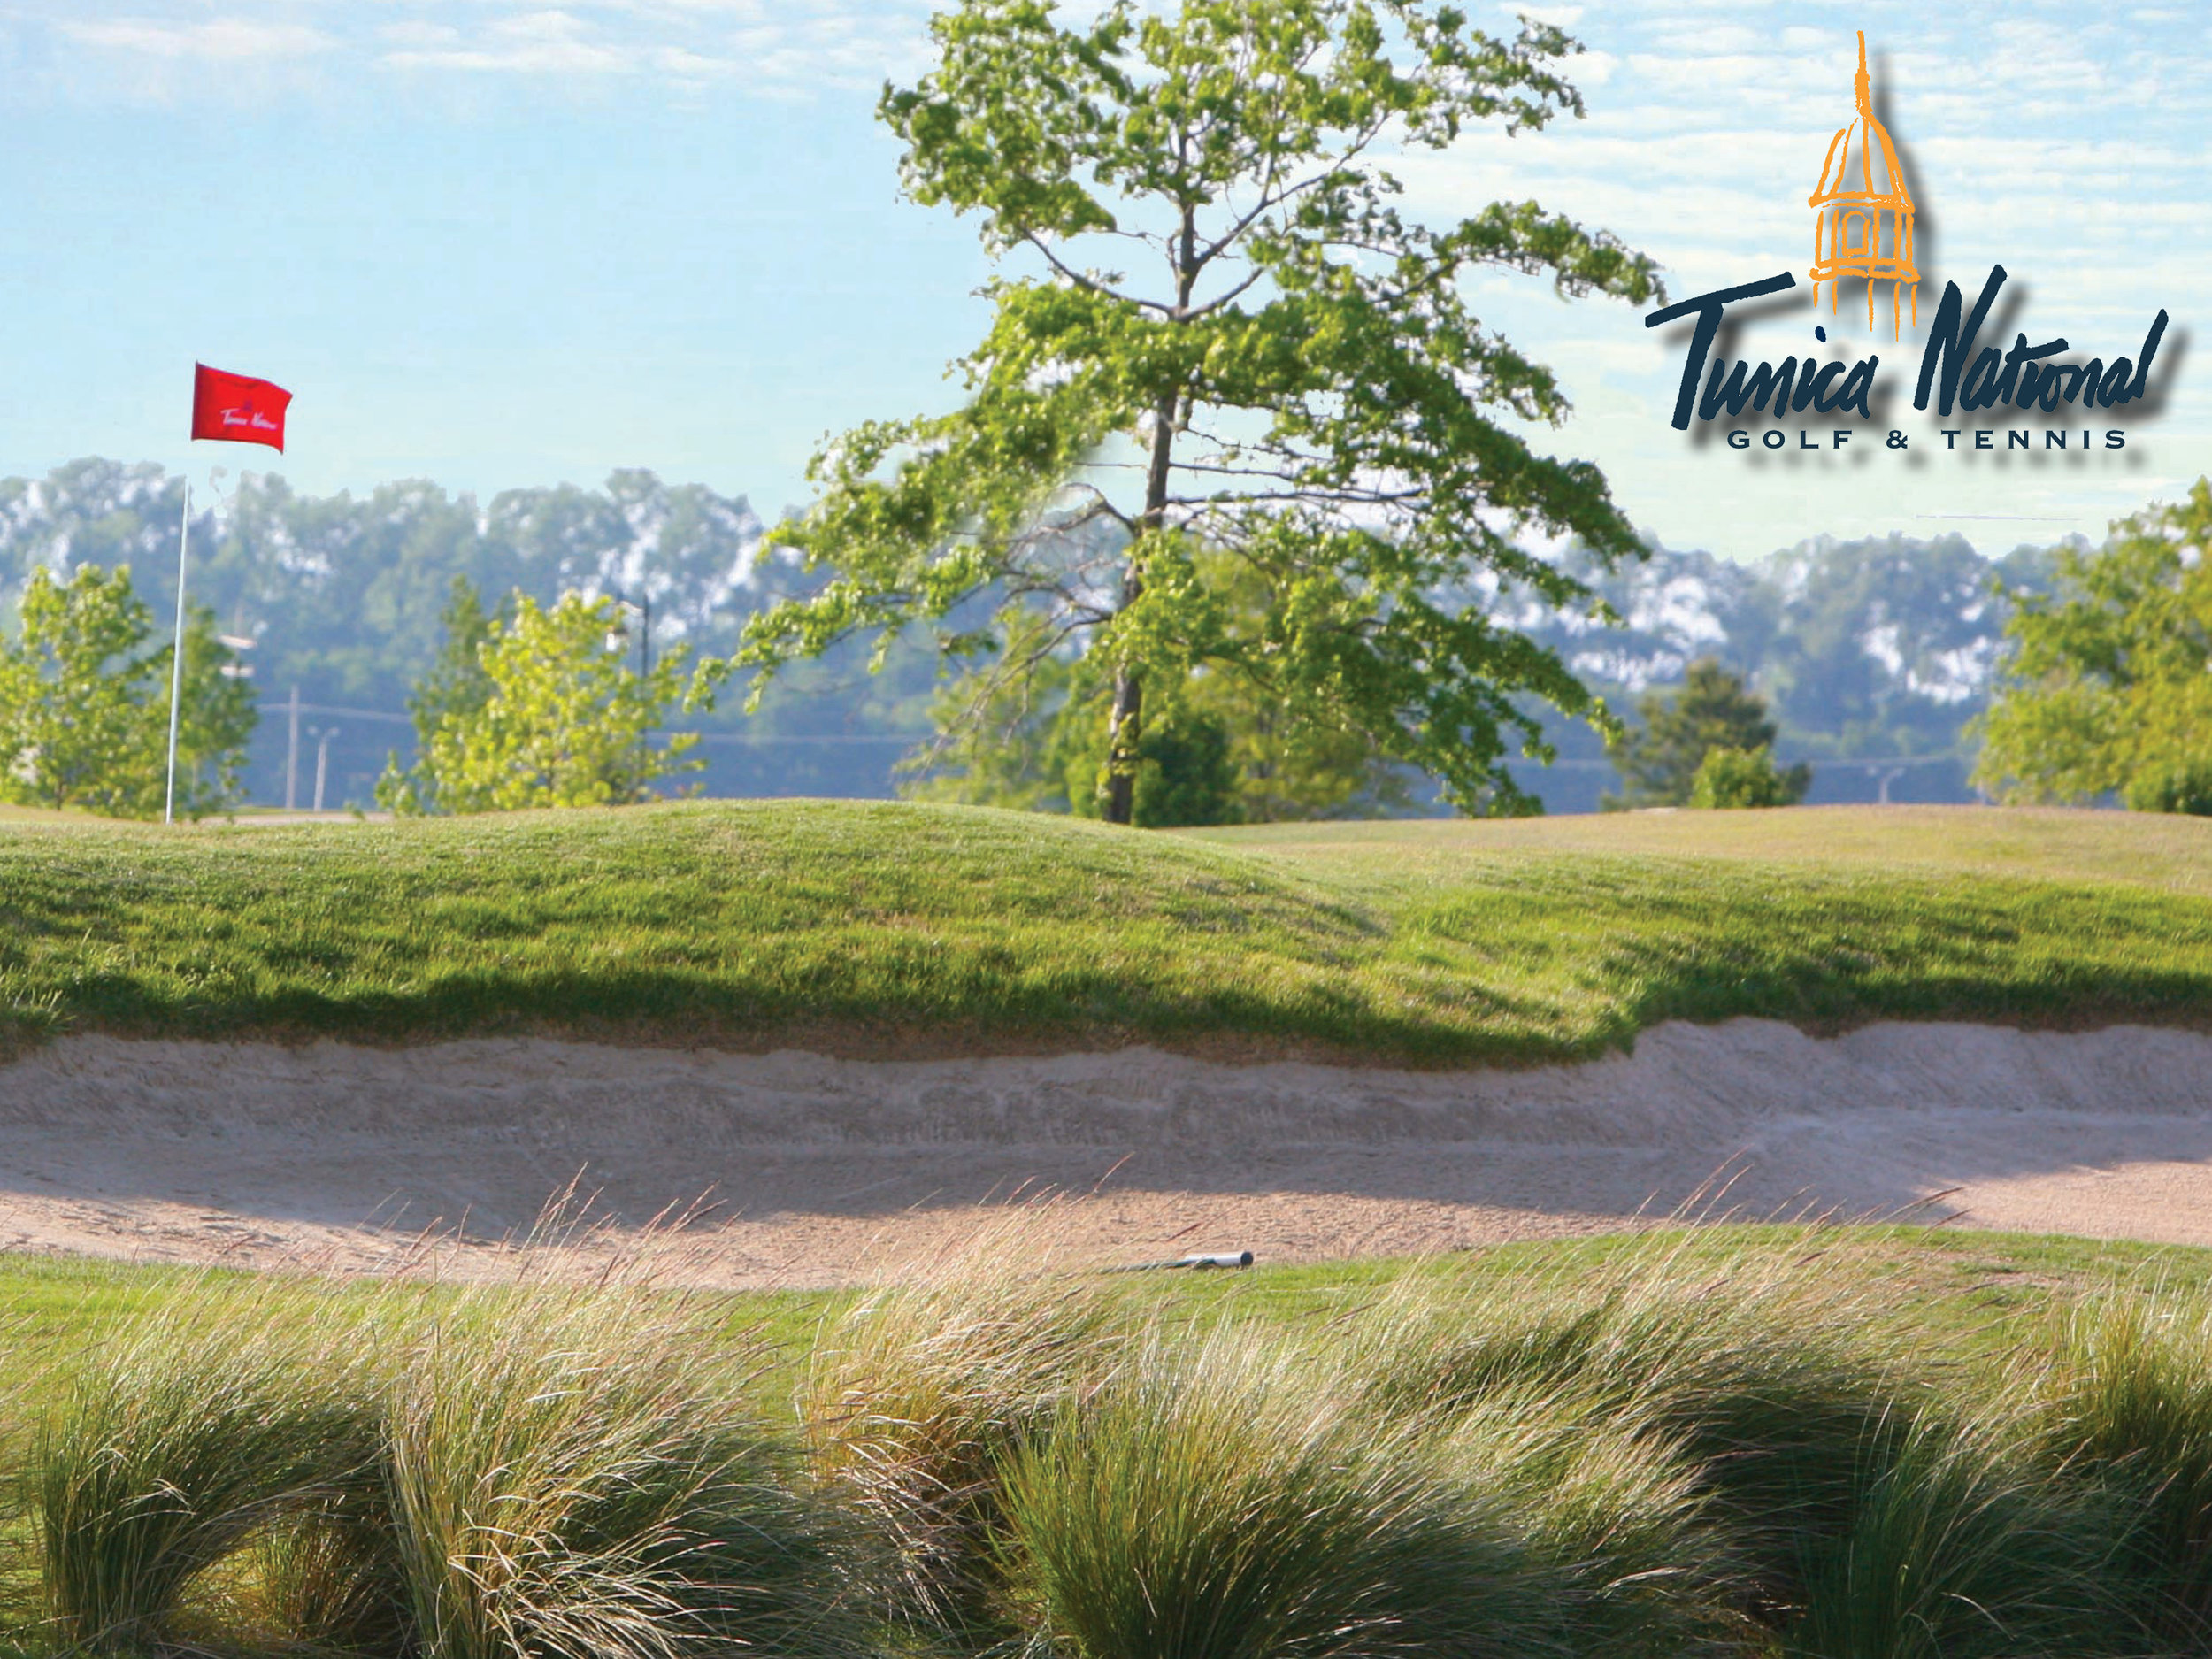 Tunica Resorts, Mississippi | SEASON KICKOFF - TUNICA NATIONAL GOLF & TENNISMarch 16th & 17th$220